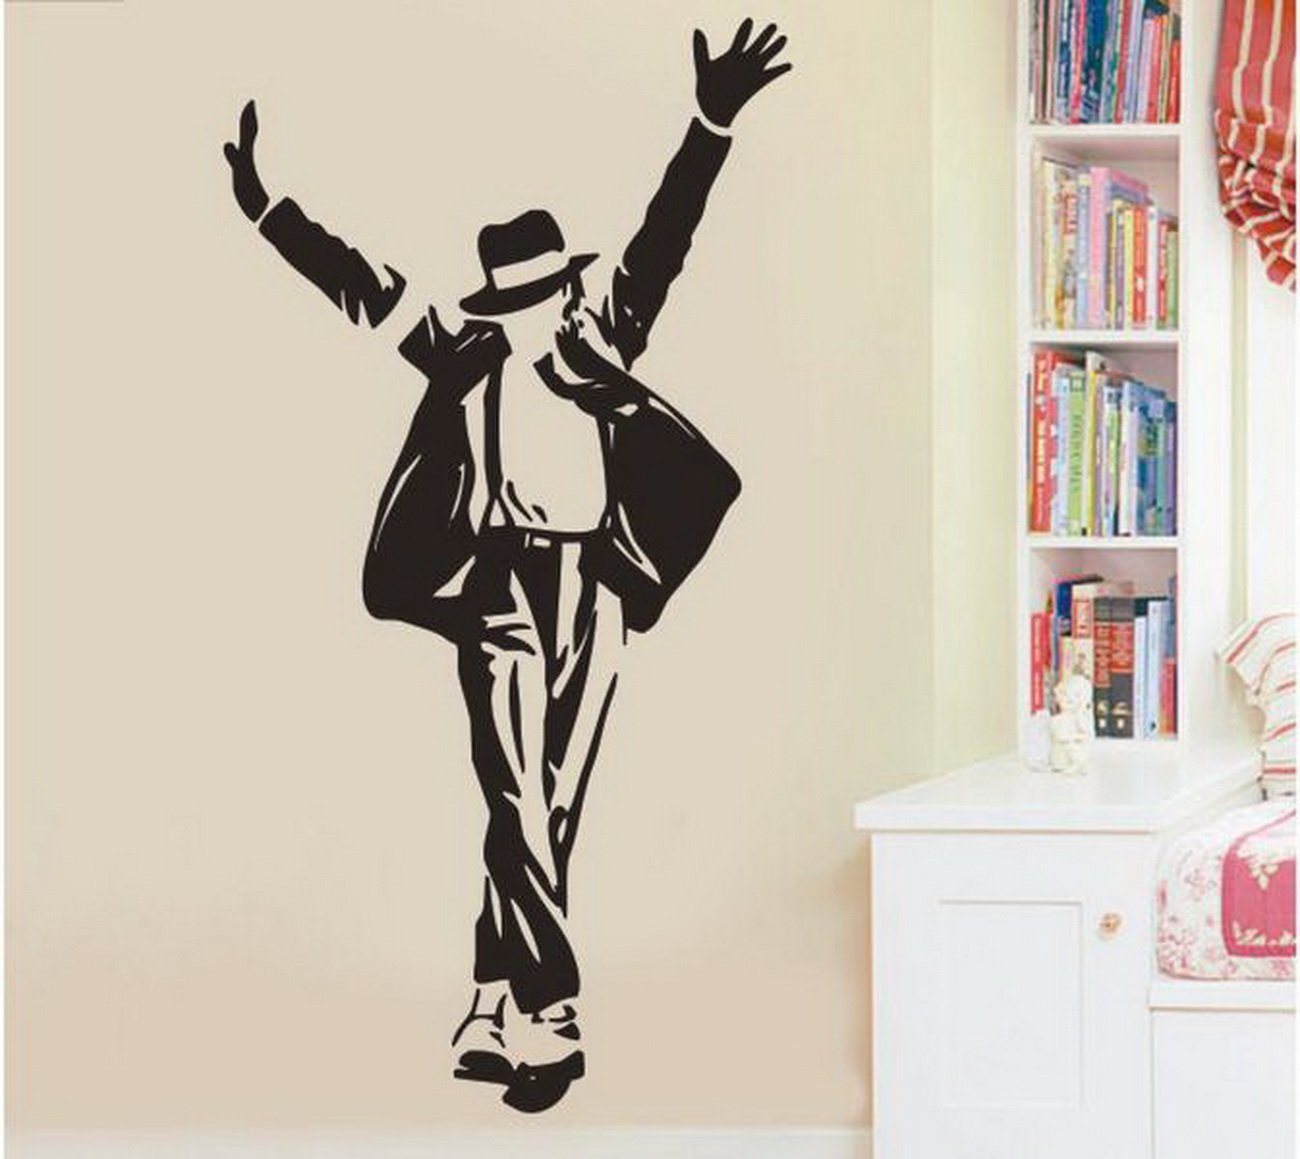 Amazon mianmiantmmichael jackson wave wall stickers diy amazon mianmiantmmichael jackson wave wall stickers diy mural art decal self adhesive removable pvc wallpaper decorblack236 inch3519 inch amipublicfo Gallery